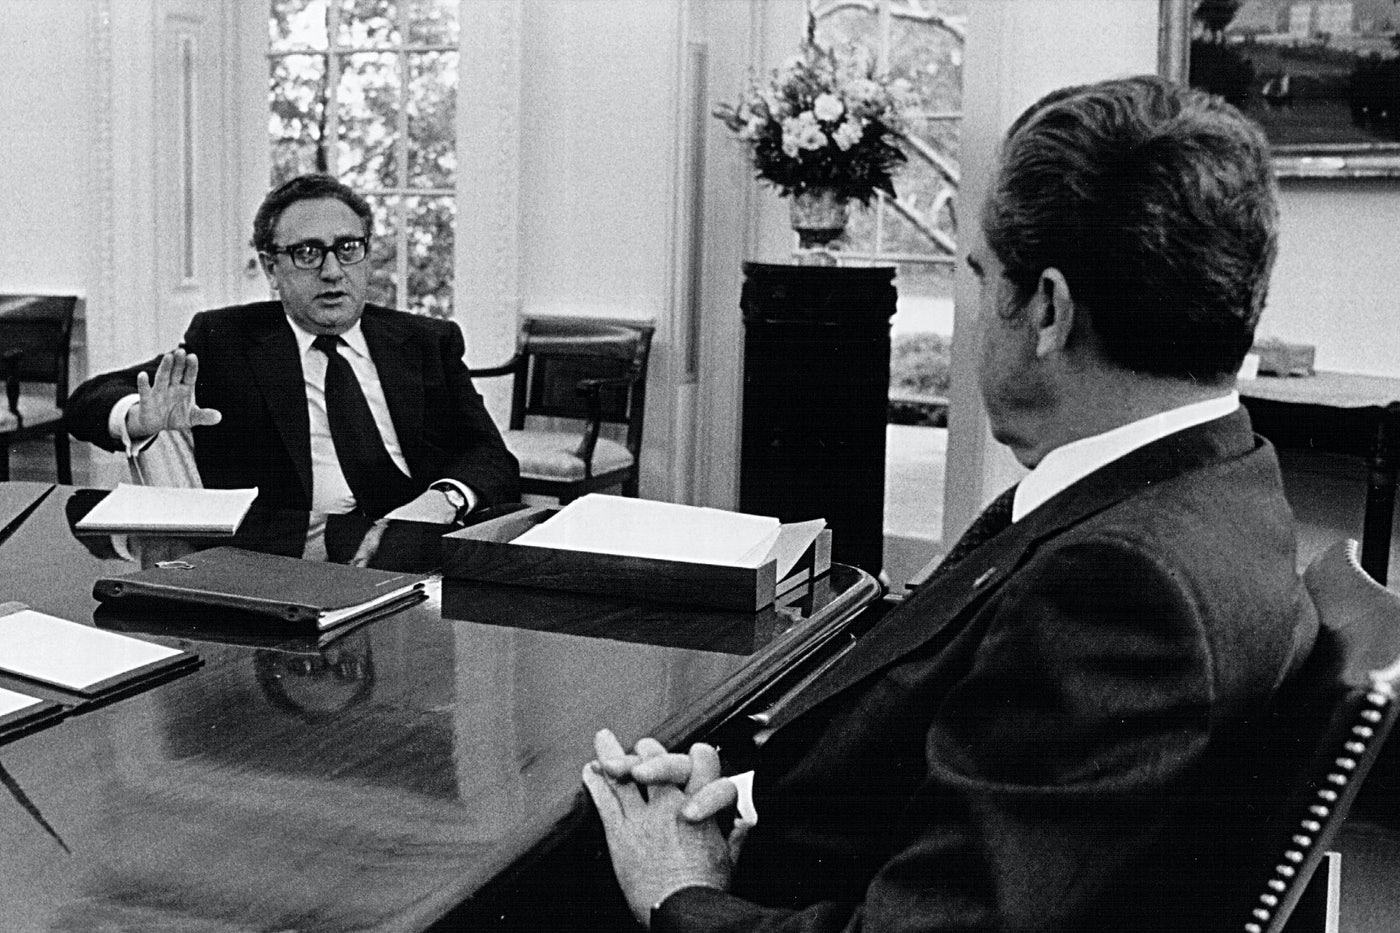 Henry Kissinger meets with Richard Nixon in 1974 at the White House.